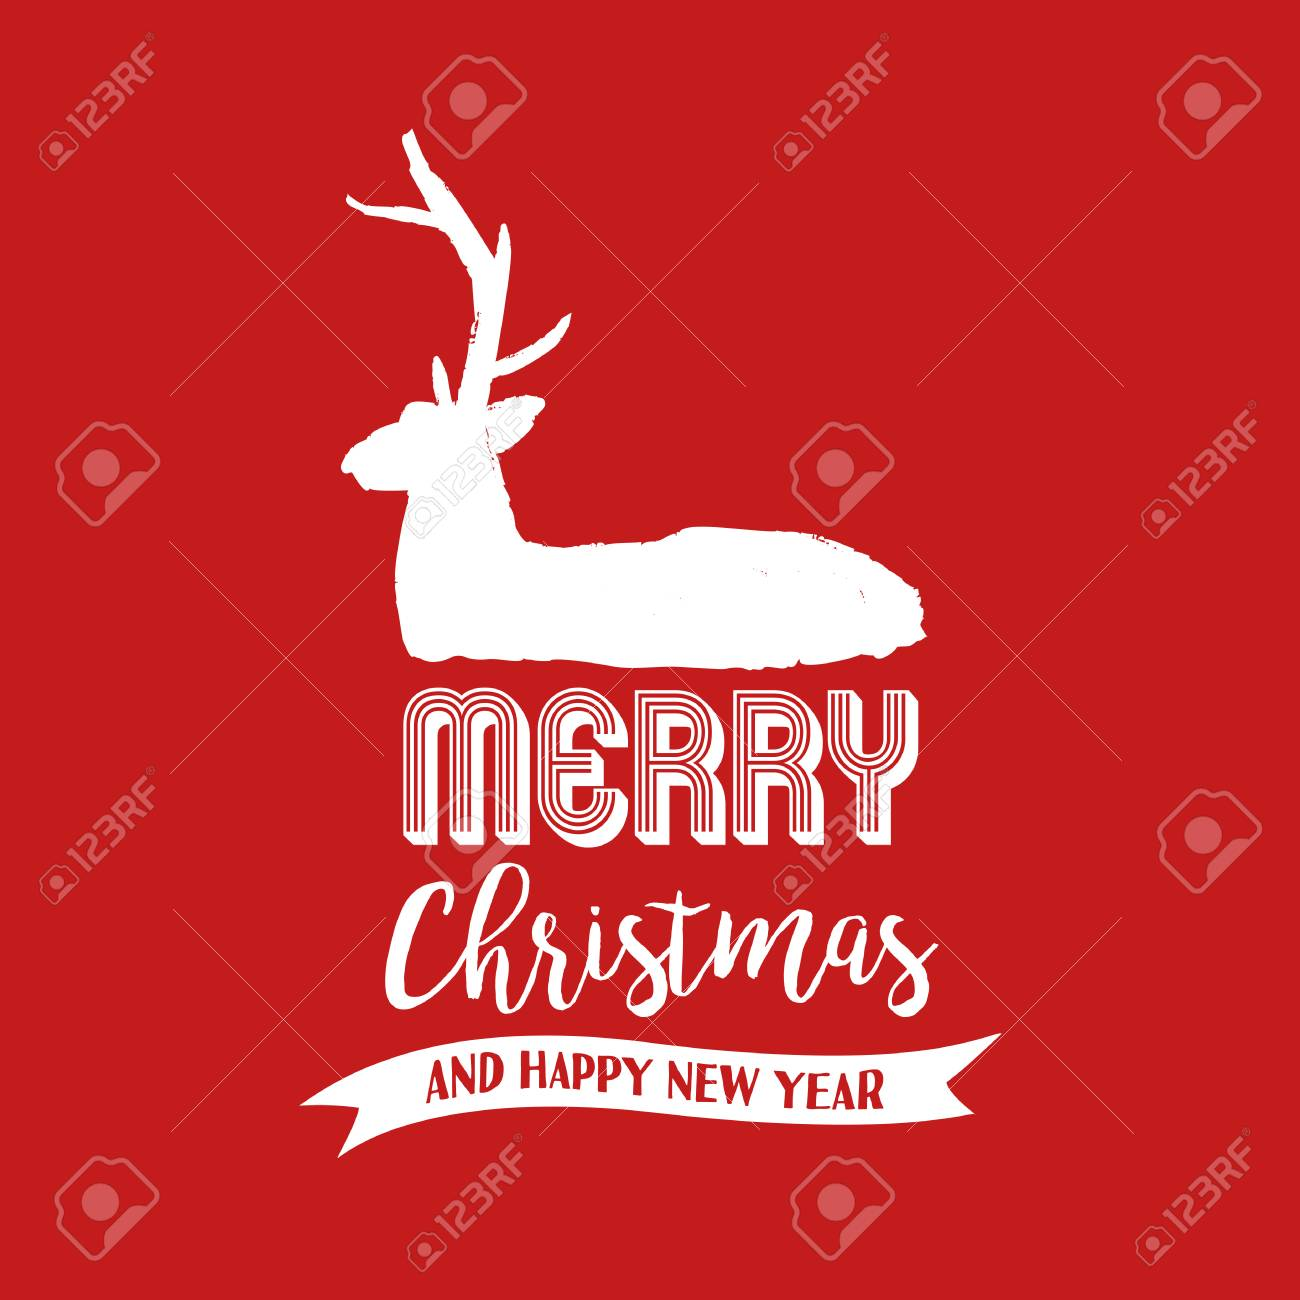 Merry Christmas Reindeer Text Quote, Calligraphy Lettering Design For  Holiday Season. Creative Red Typography